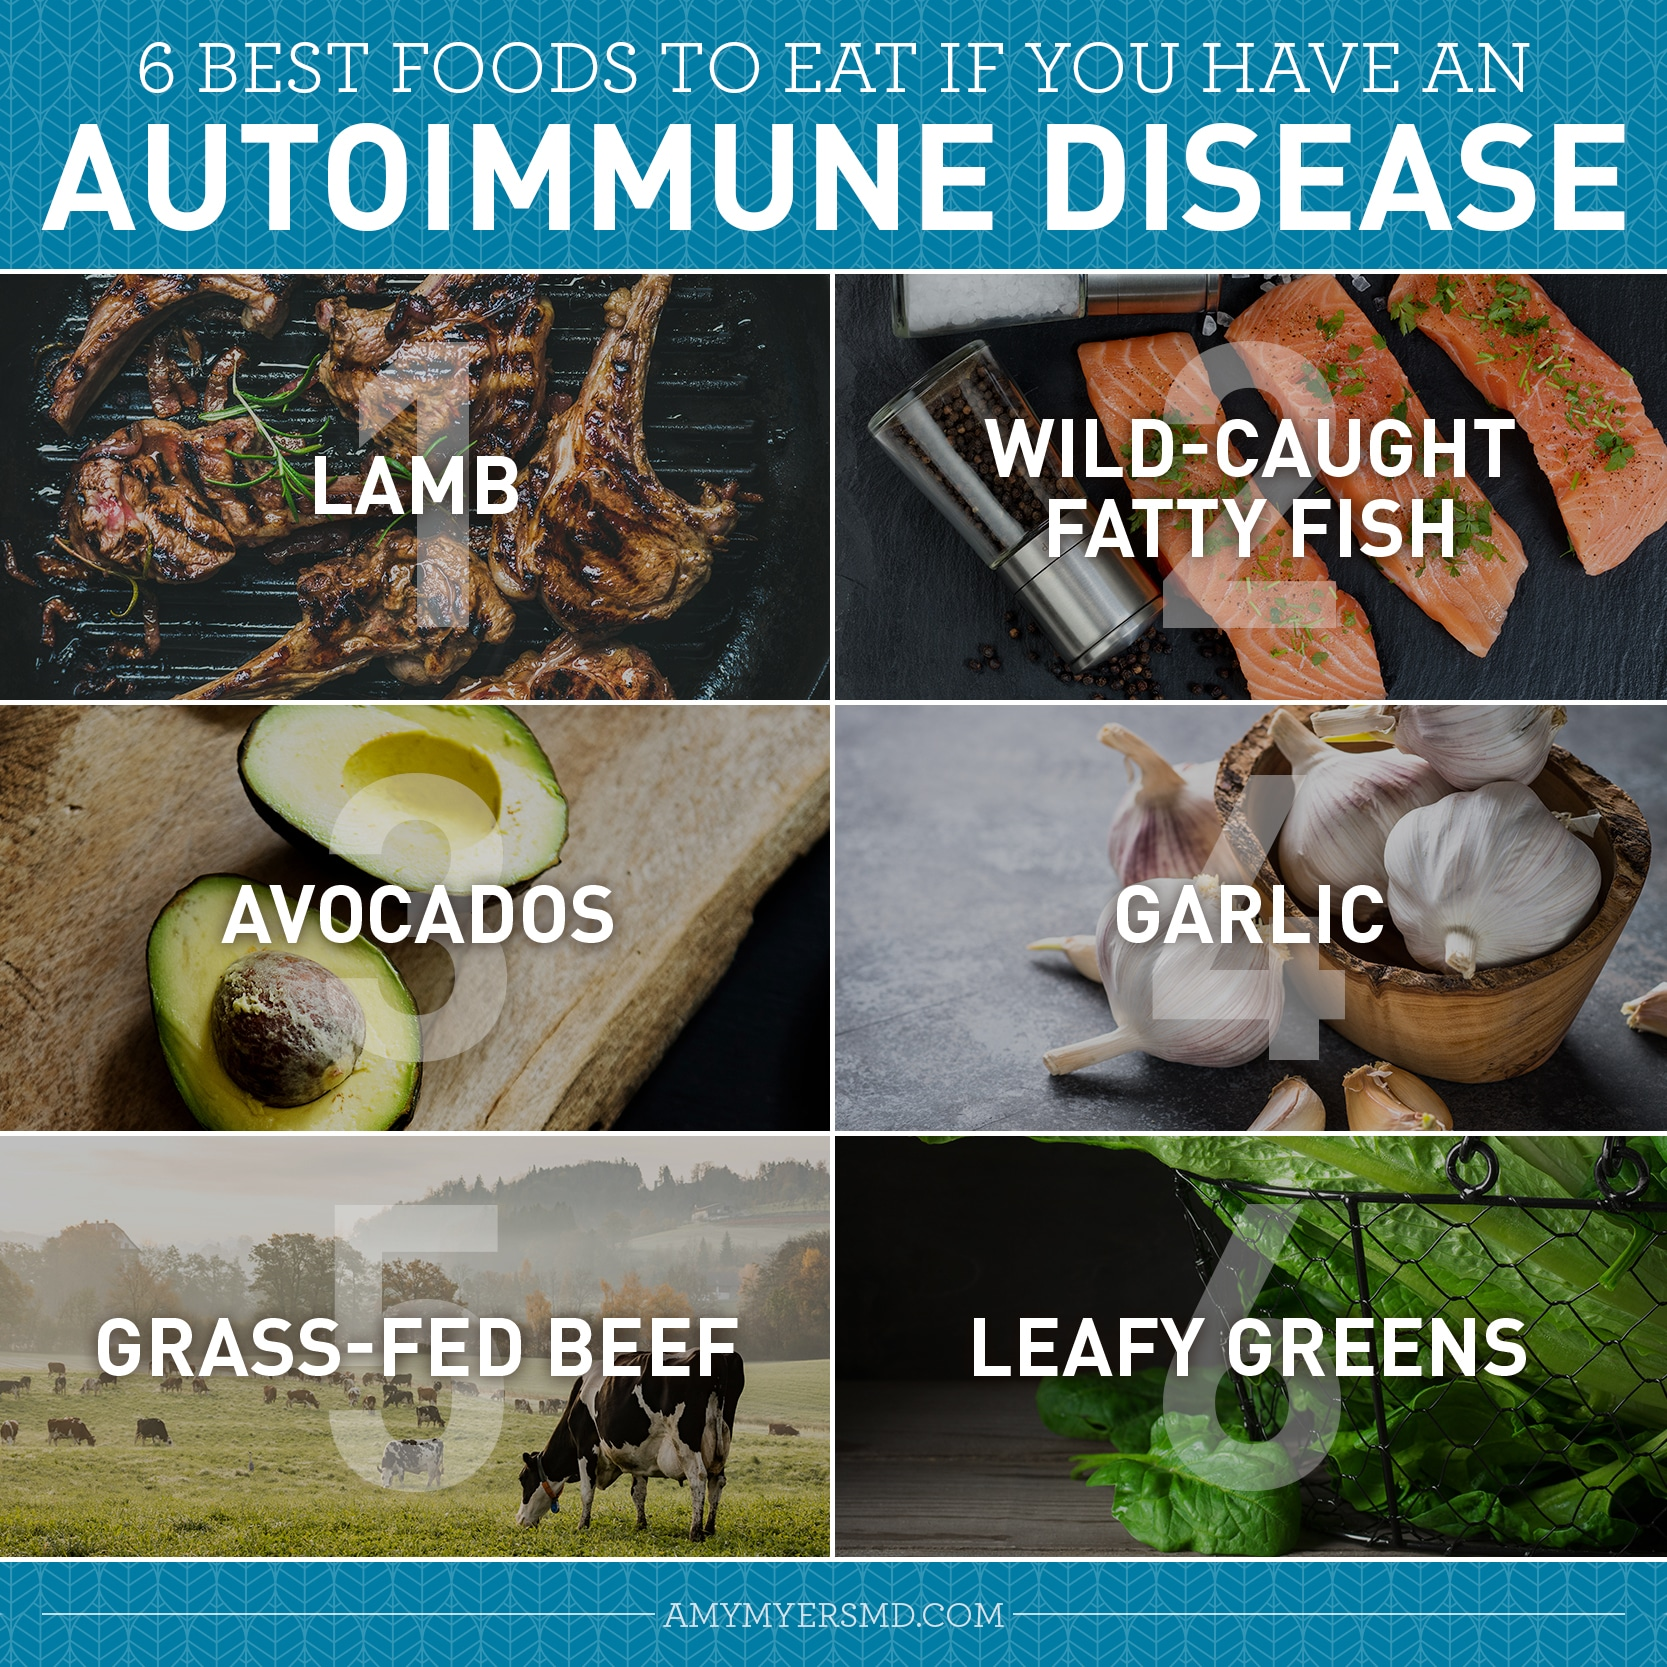 List of the 6 Best Foods to Eat if You Have an Autoimmune Disease - Infographic - Amy Myers MD